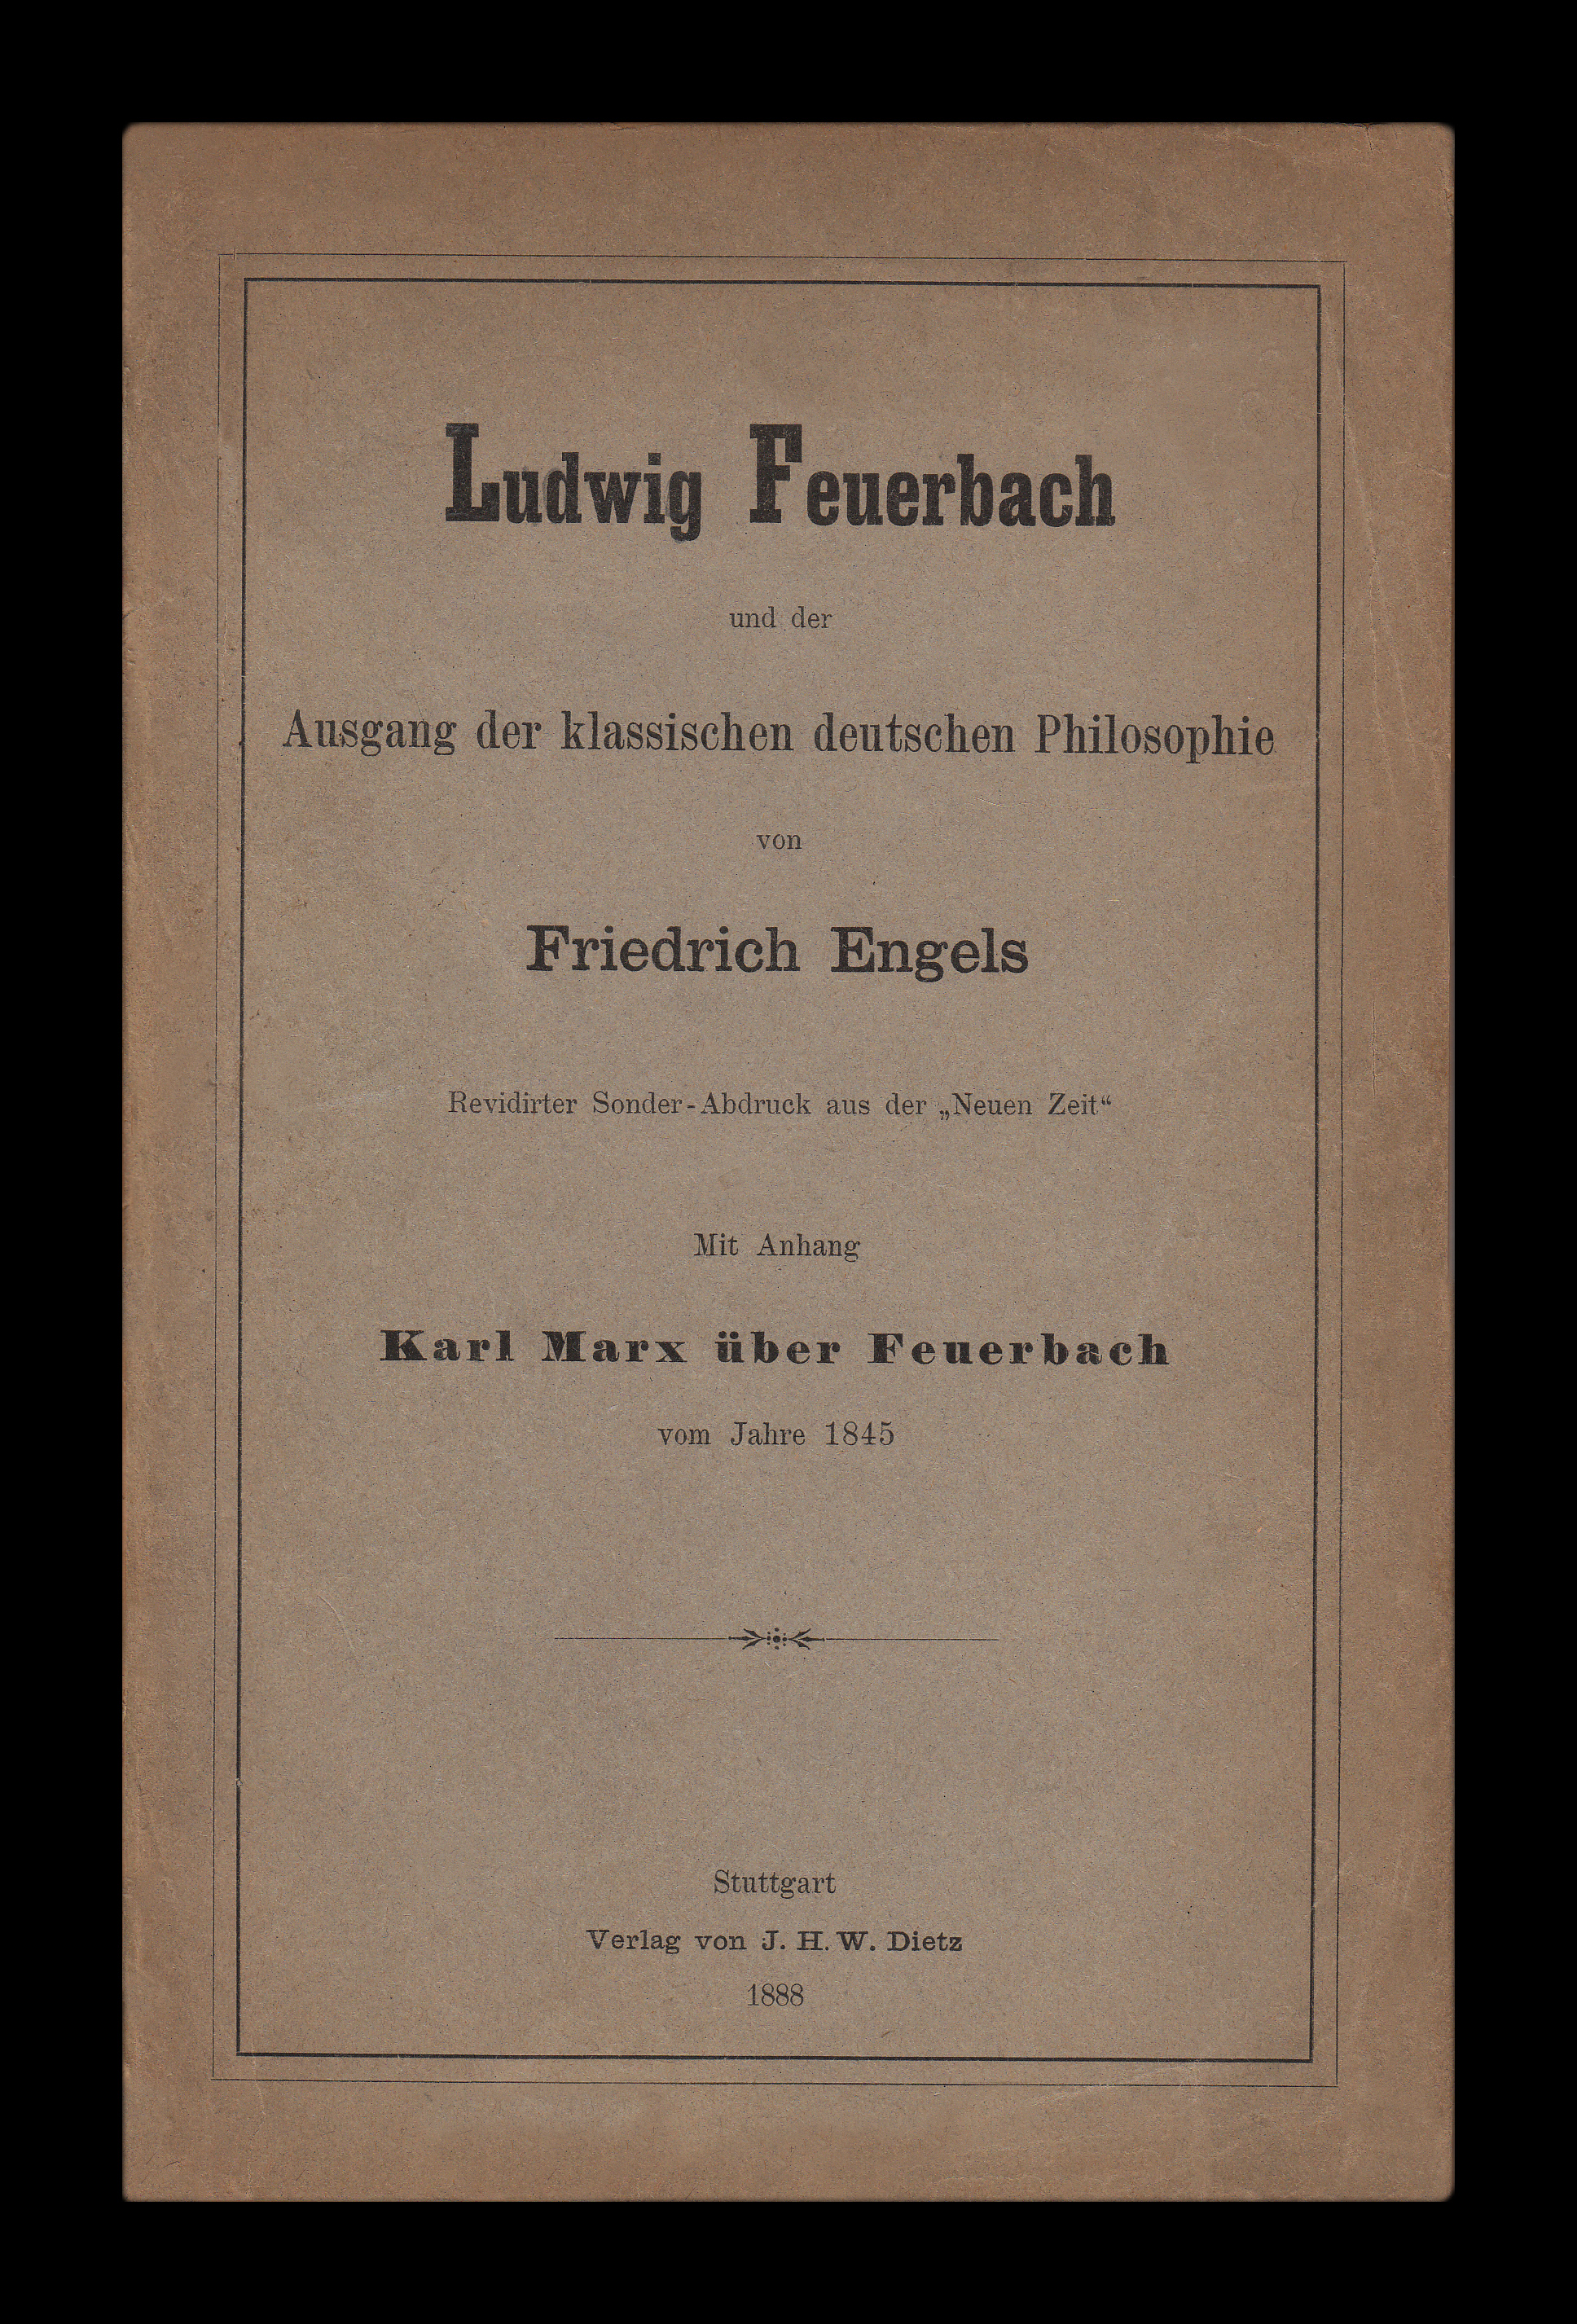 marx theses on feuerbach sparknotes ดูวิดีโอ german philosopher and revolutionary socialist karl marx published the communist manifesto and das  and the german ideology-- along with theses on feuerbach.